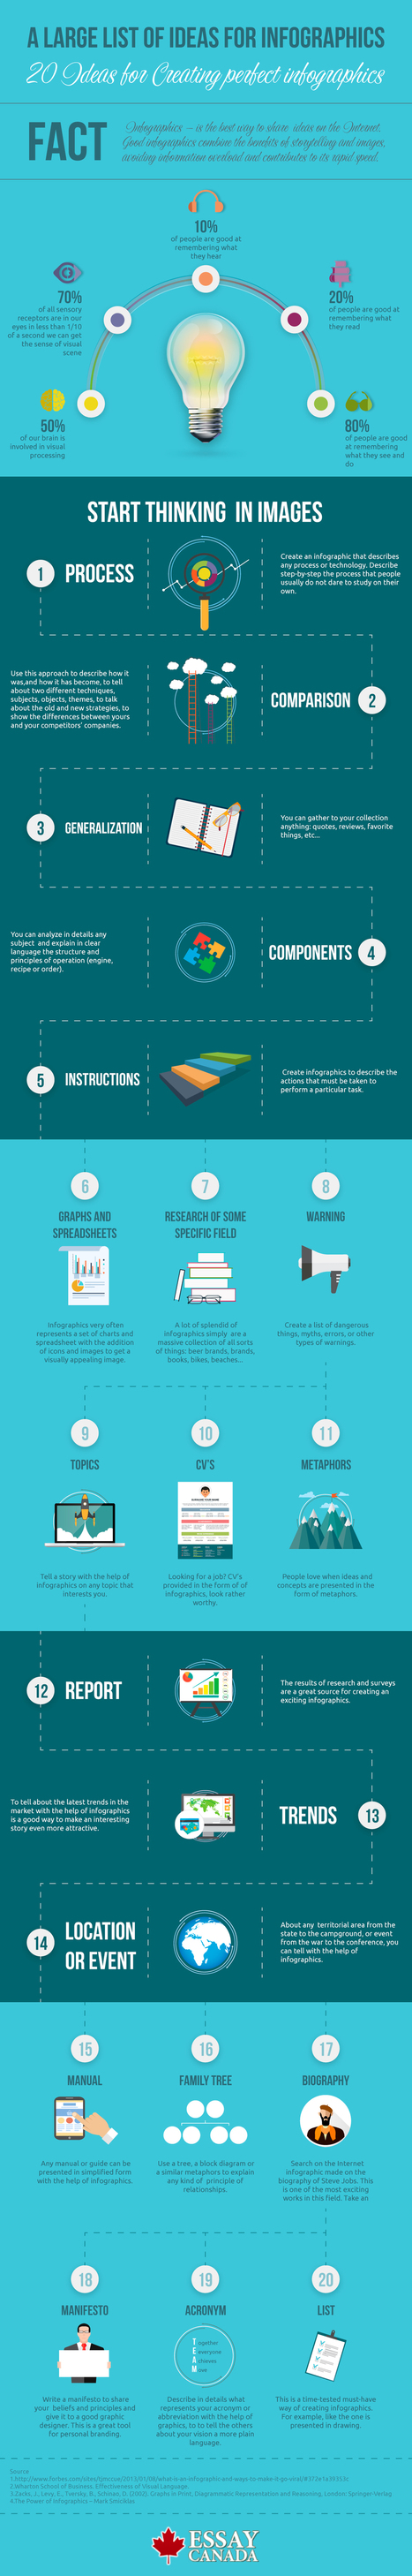 20 Ideas for Creating Perfect Infographics Infographic - e-Learning Infographics | Serious Play | Scoop.it